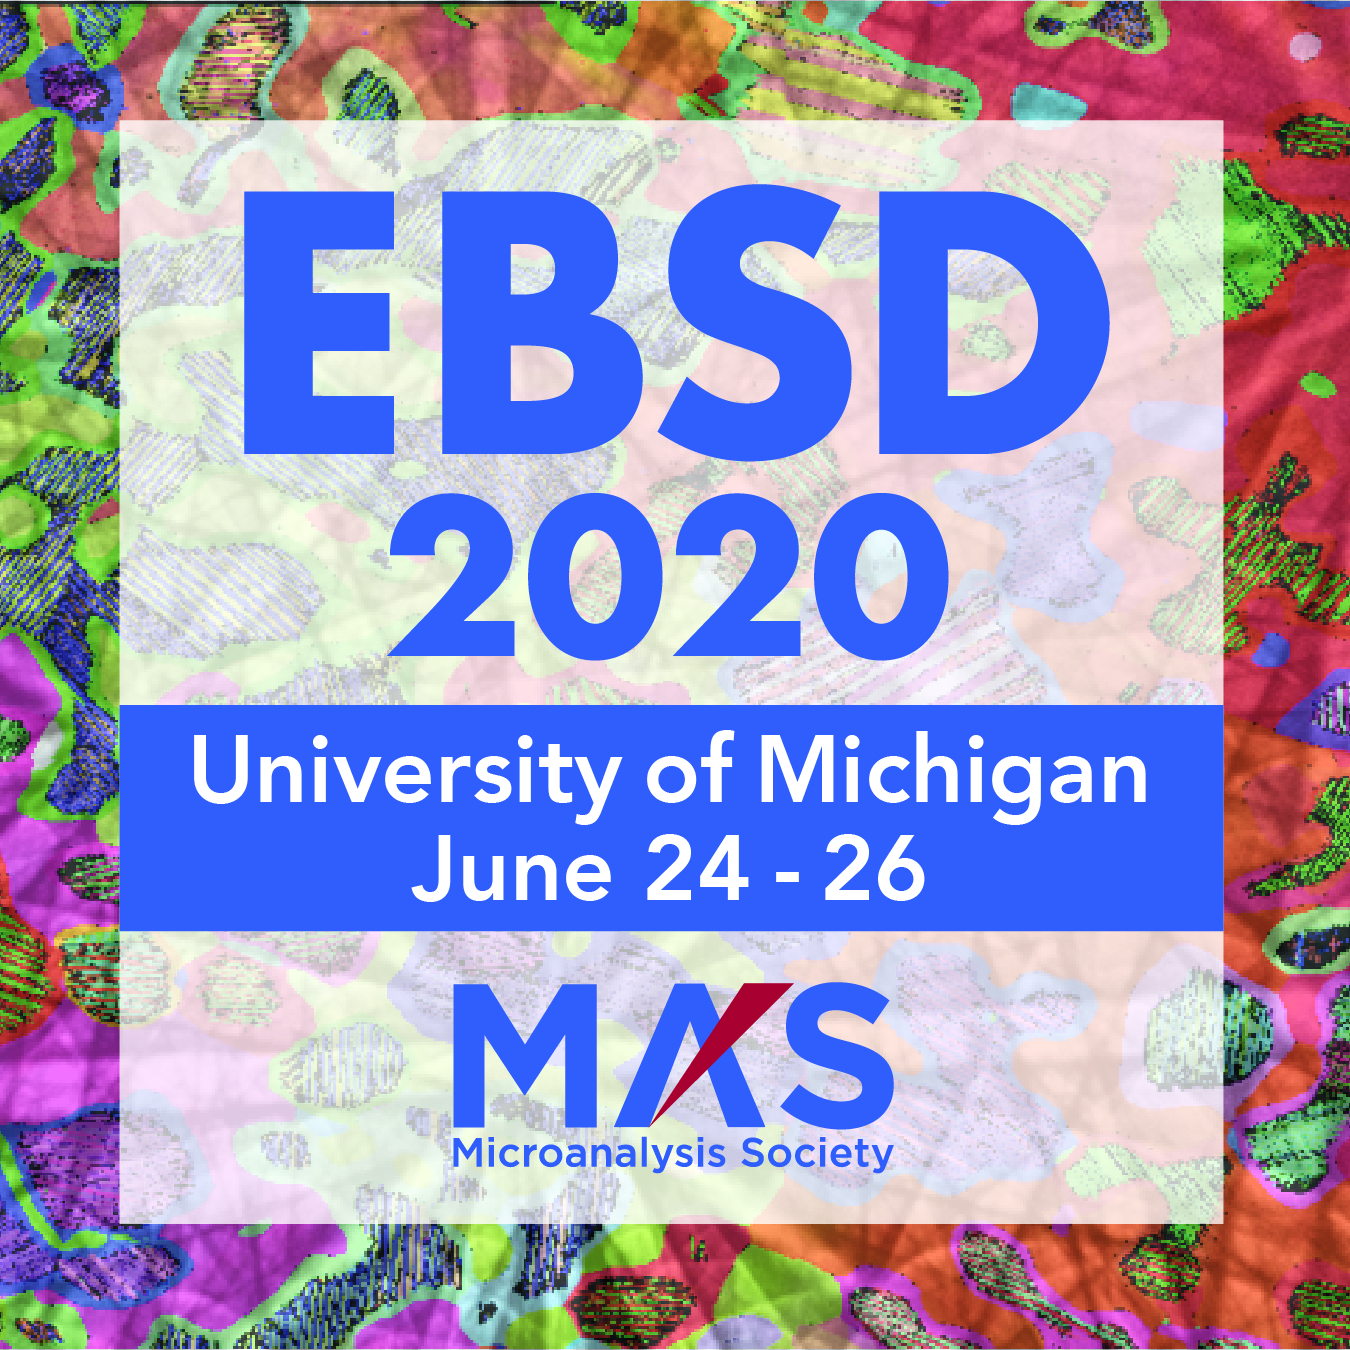 Announcing: EBSD 2020 Topical Conference – Microanalysis Society